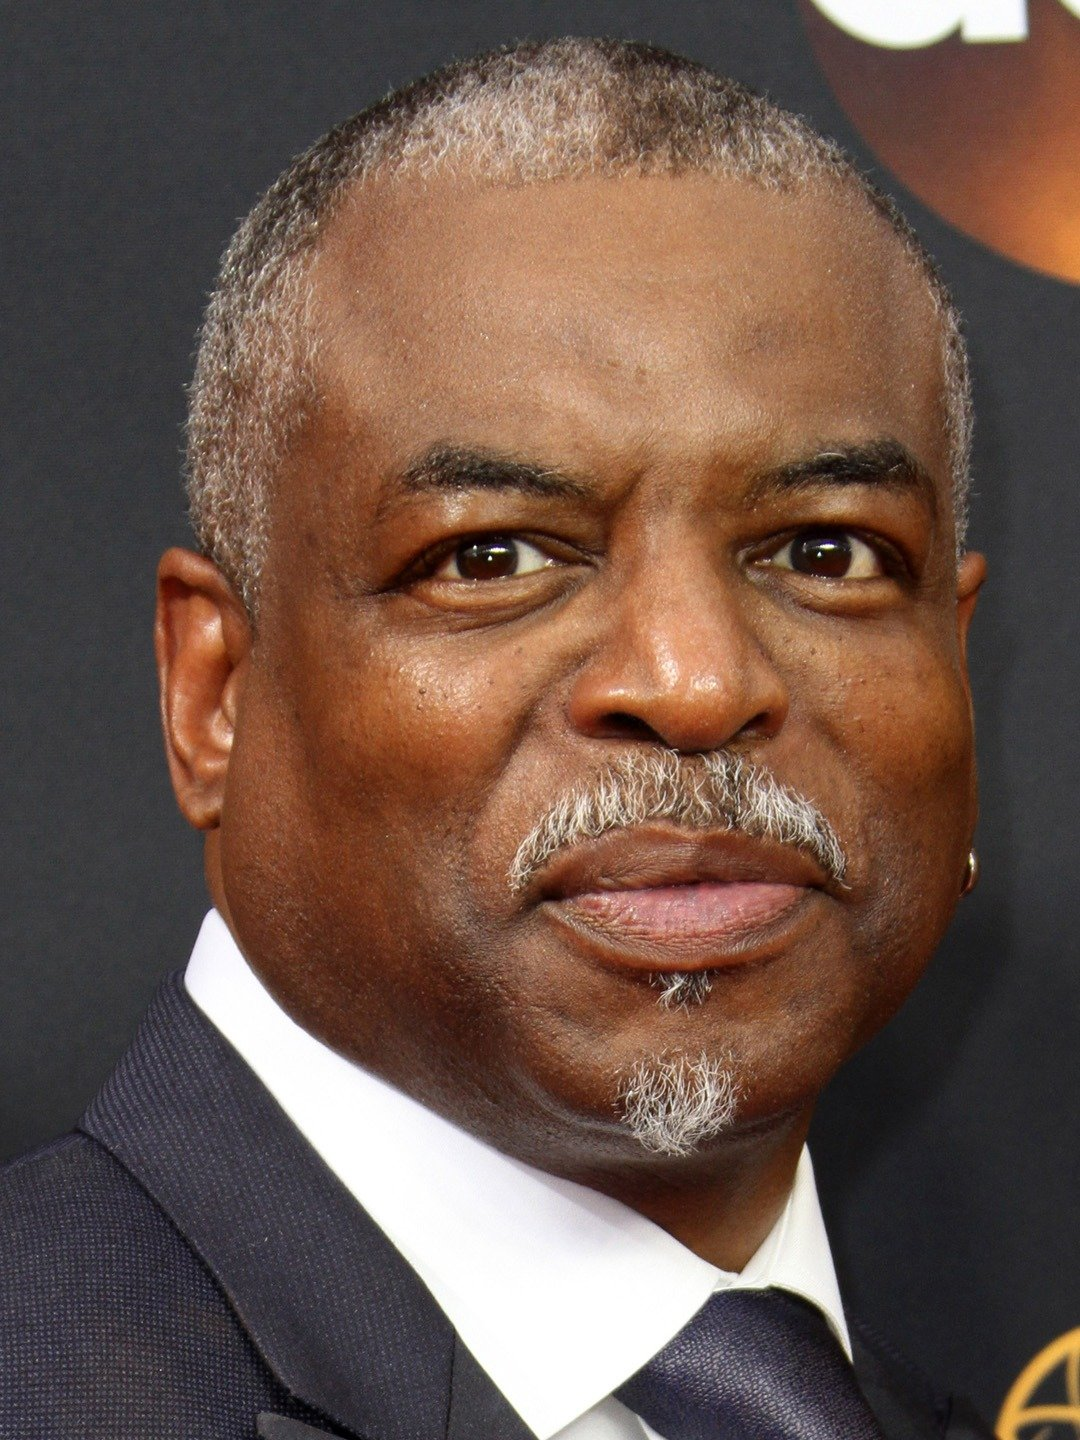 Online Petition Requests LeVar Burton As Next Host of Jeopardy